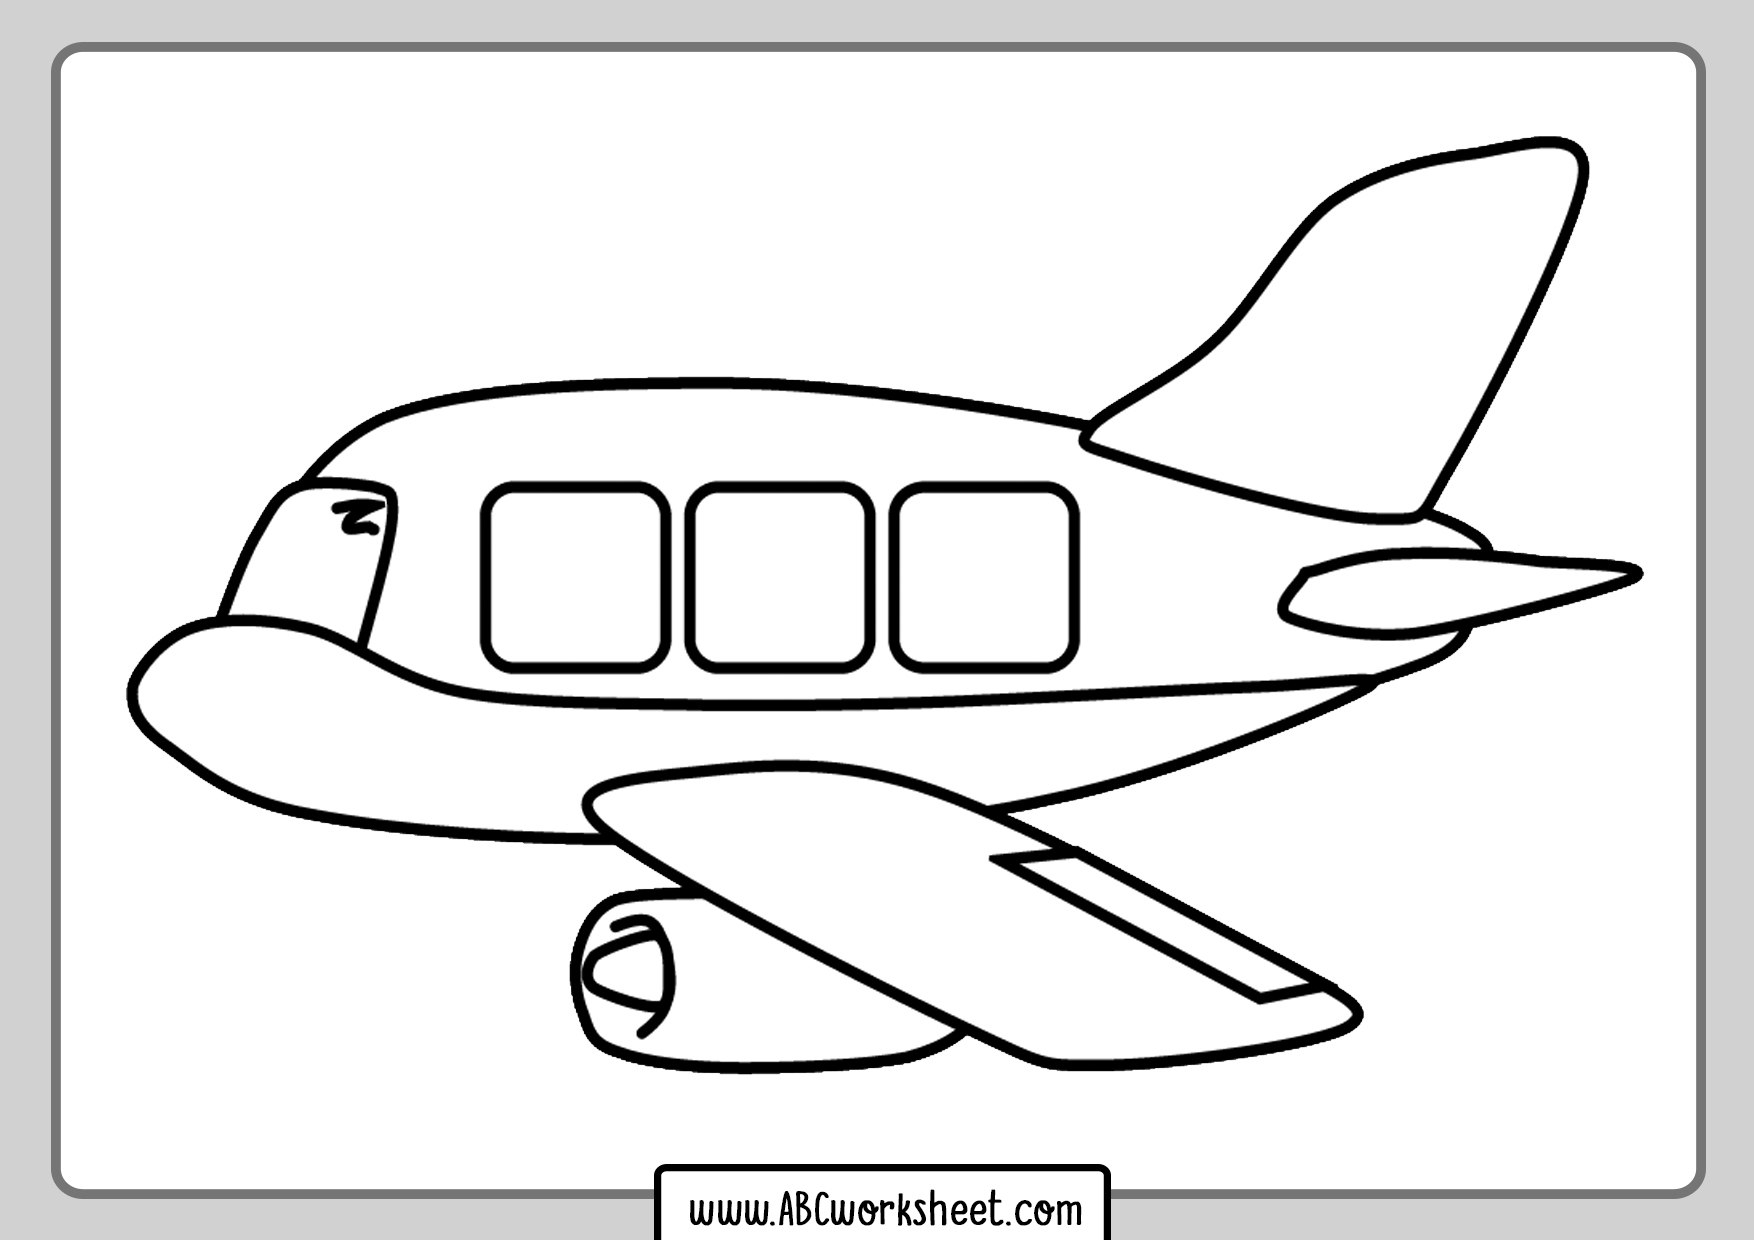 Airplane Drawing For Coloring